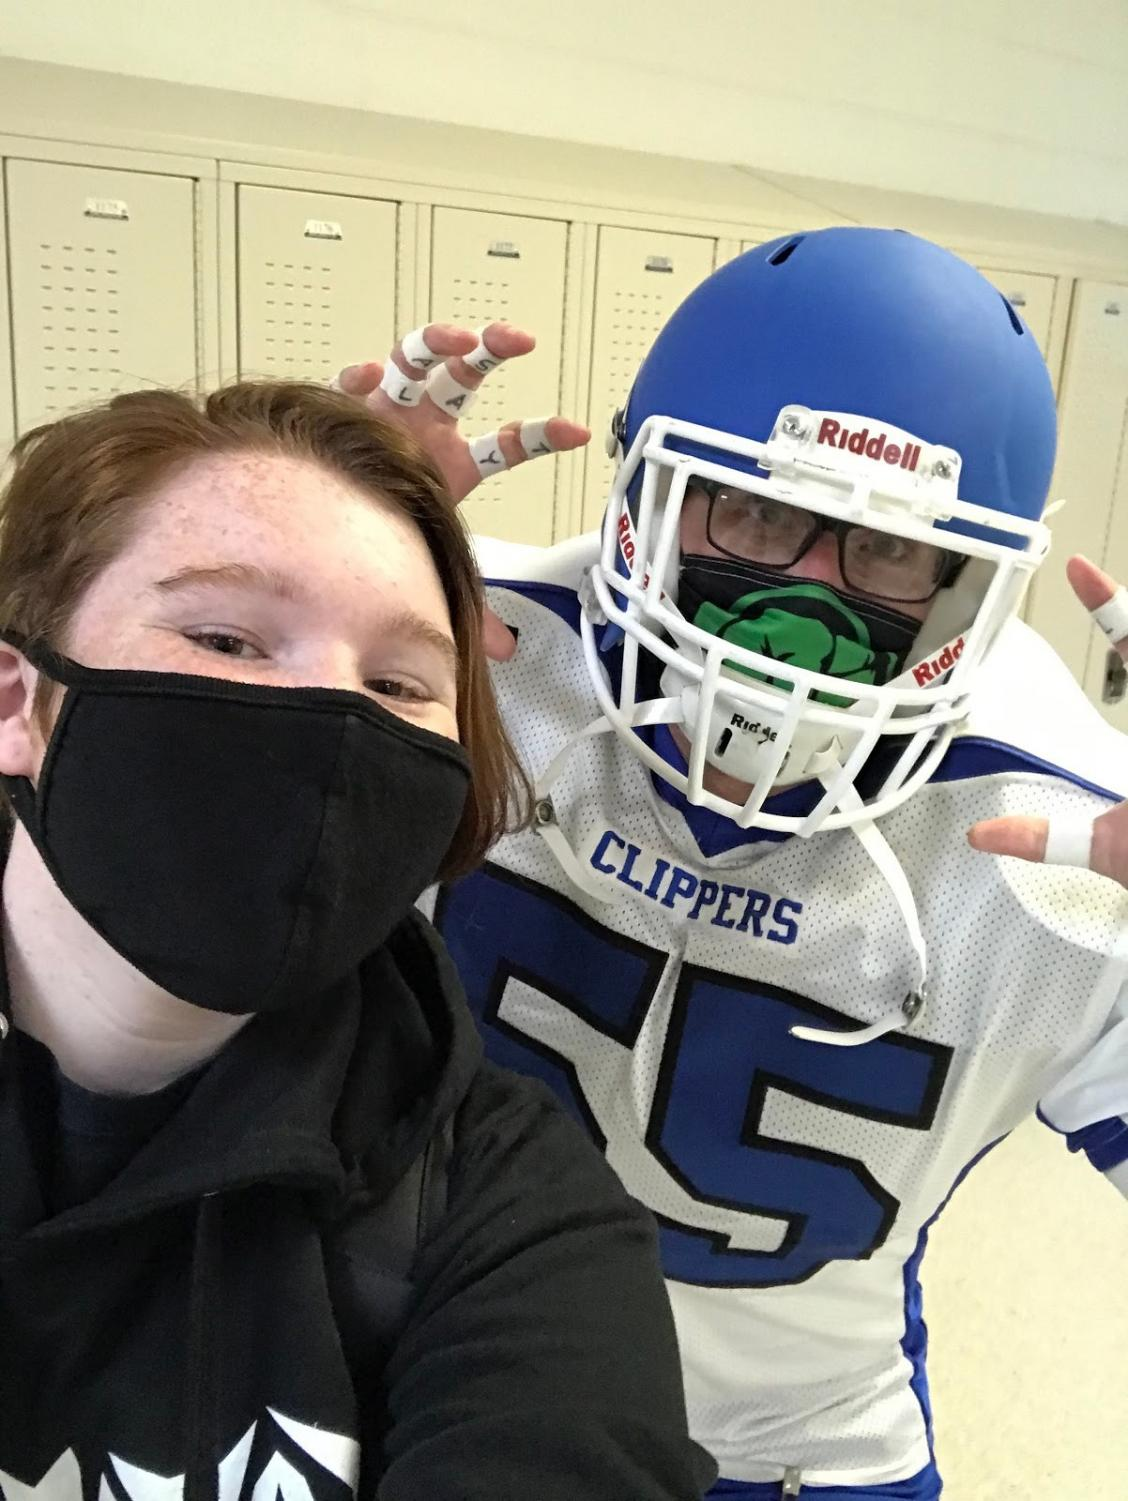 Reporter Red Cruz pictured with Mr. Karsjens dressed up for Clipper Spirit Day.